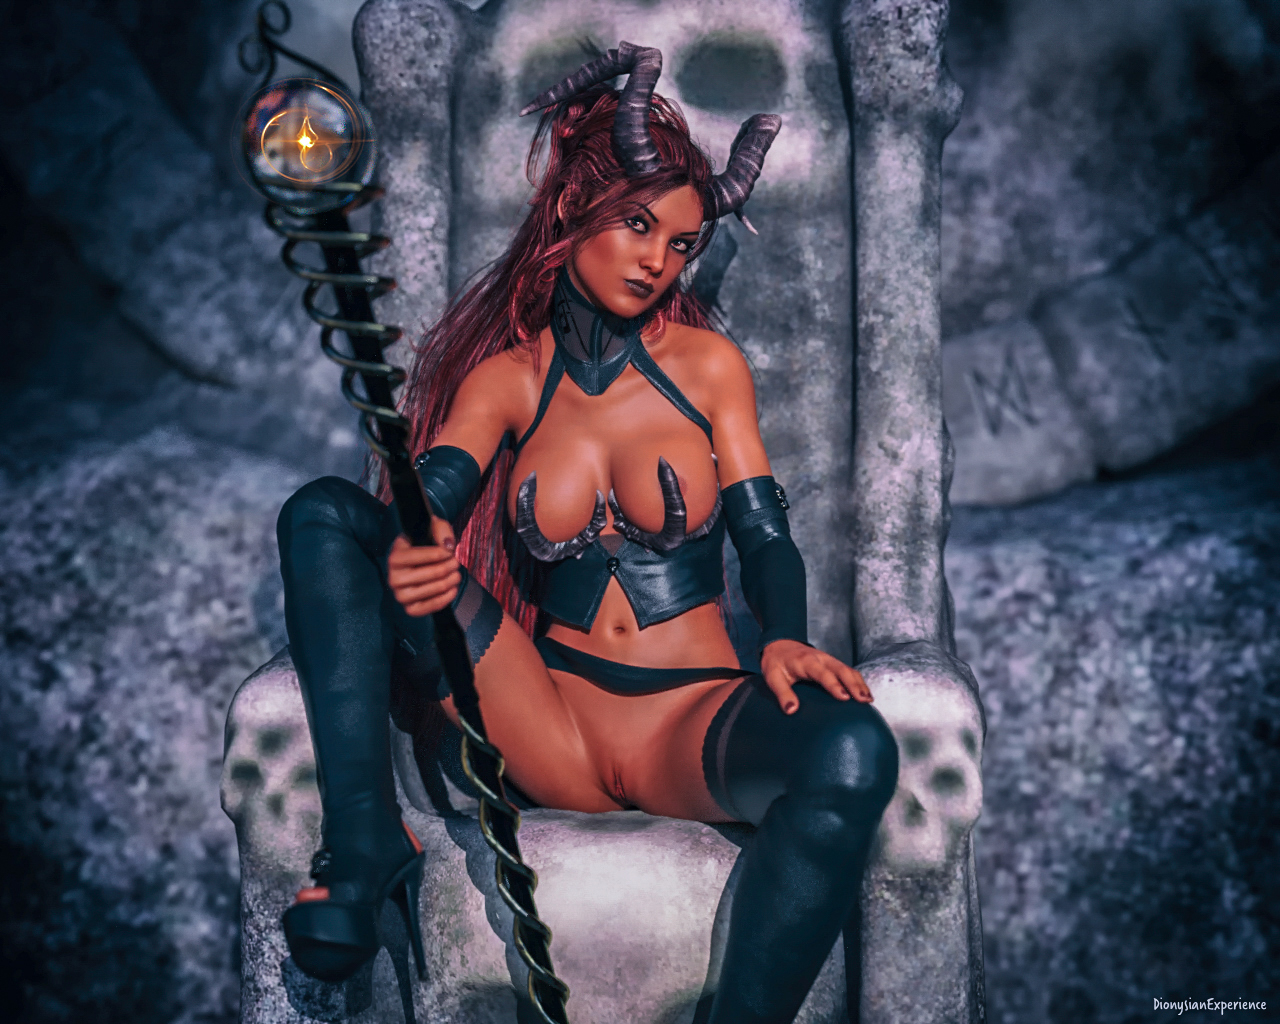 Digital Art: Succubus – Devil Woman